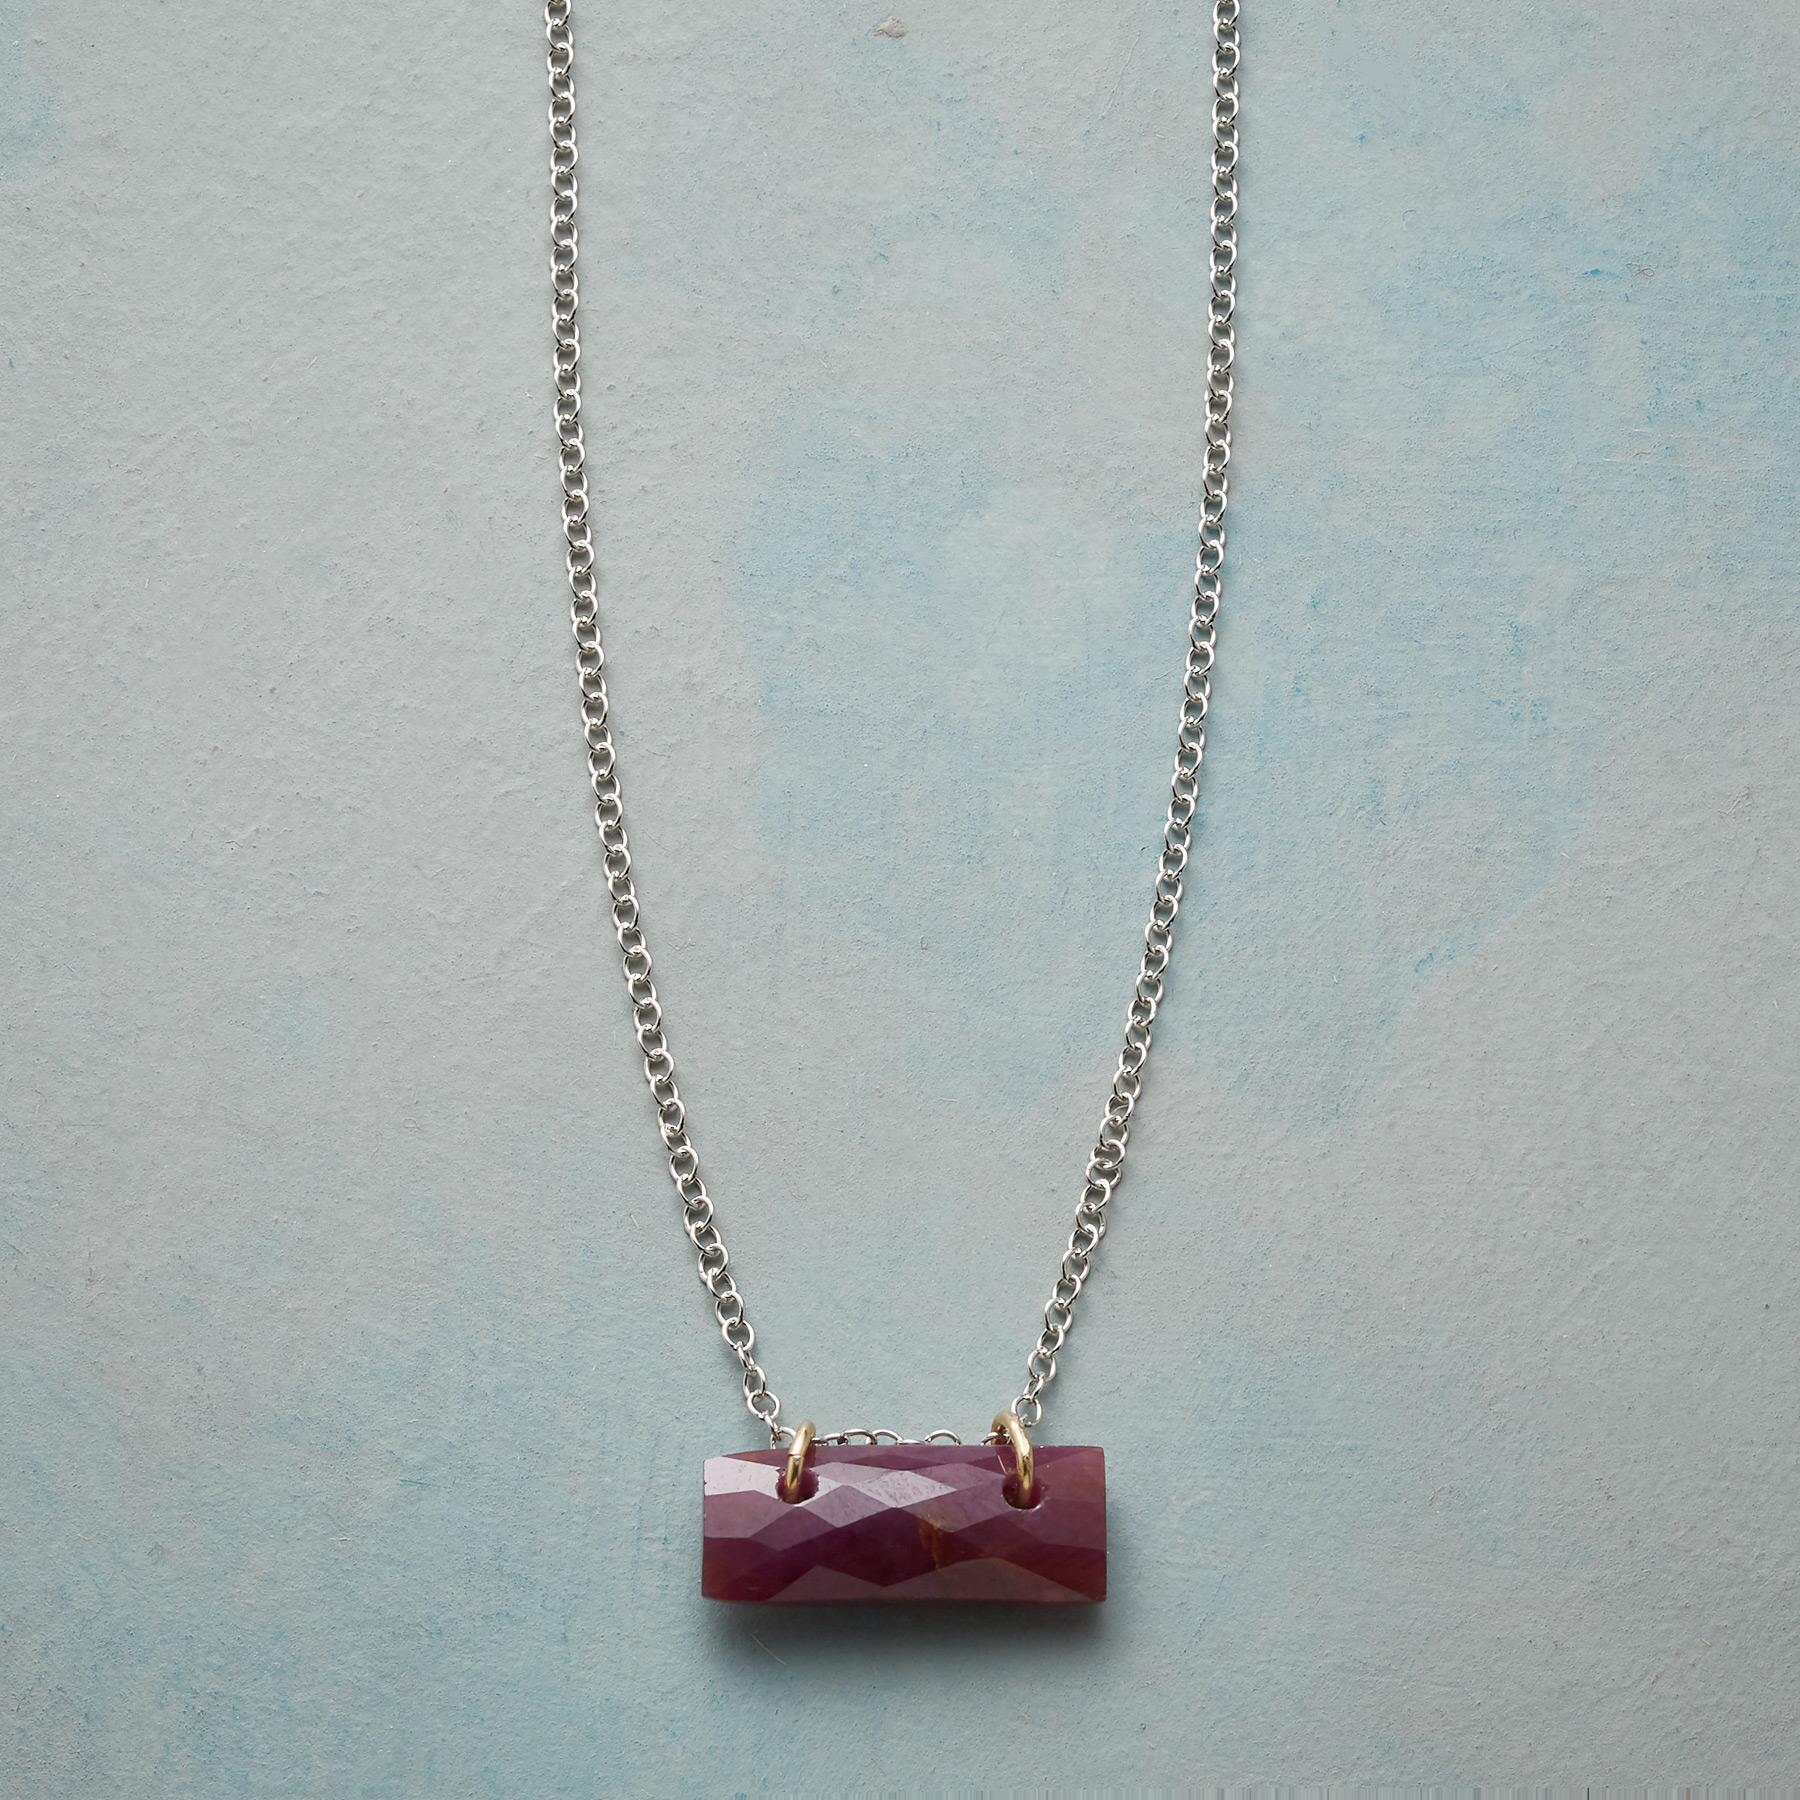 BIRTHSTONE TILE NECKLACE: View 1